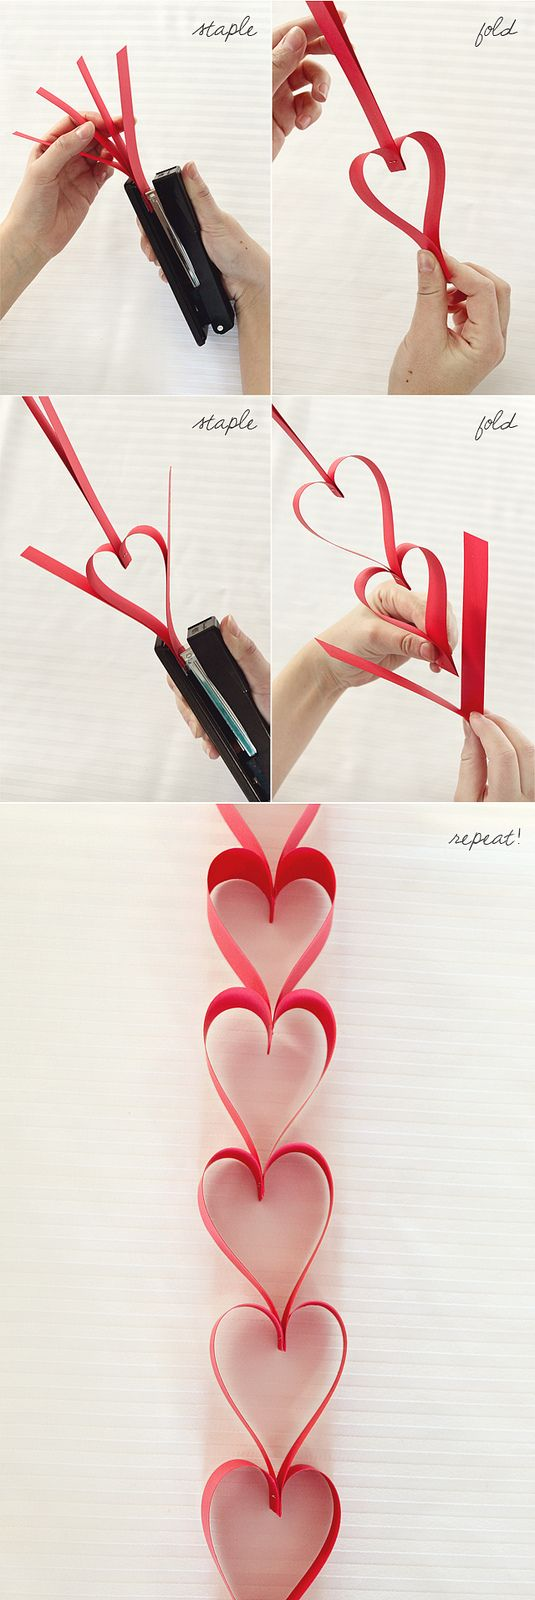 Heart Garland DIY Tutorial | justbellablog | Flickr